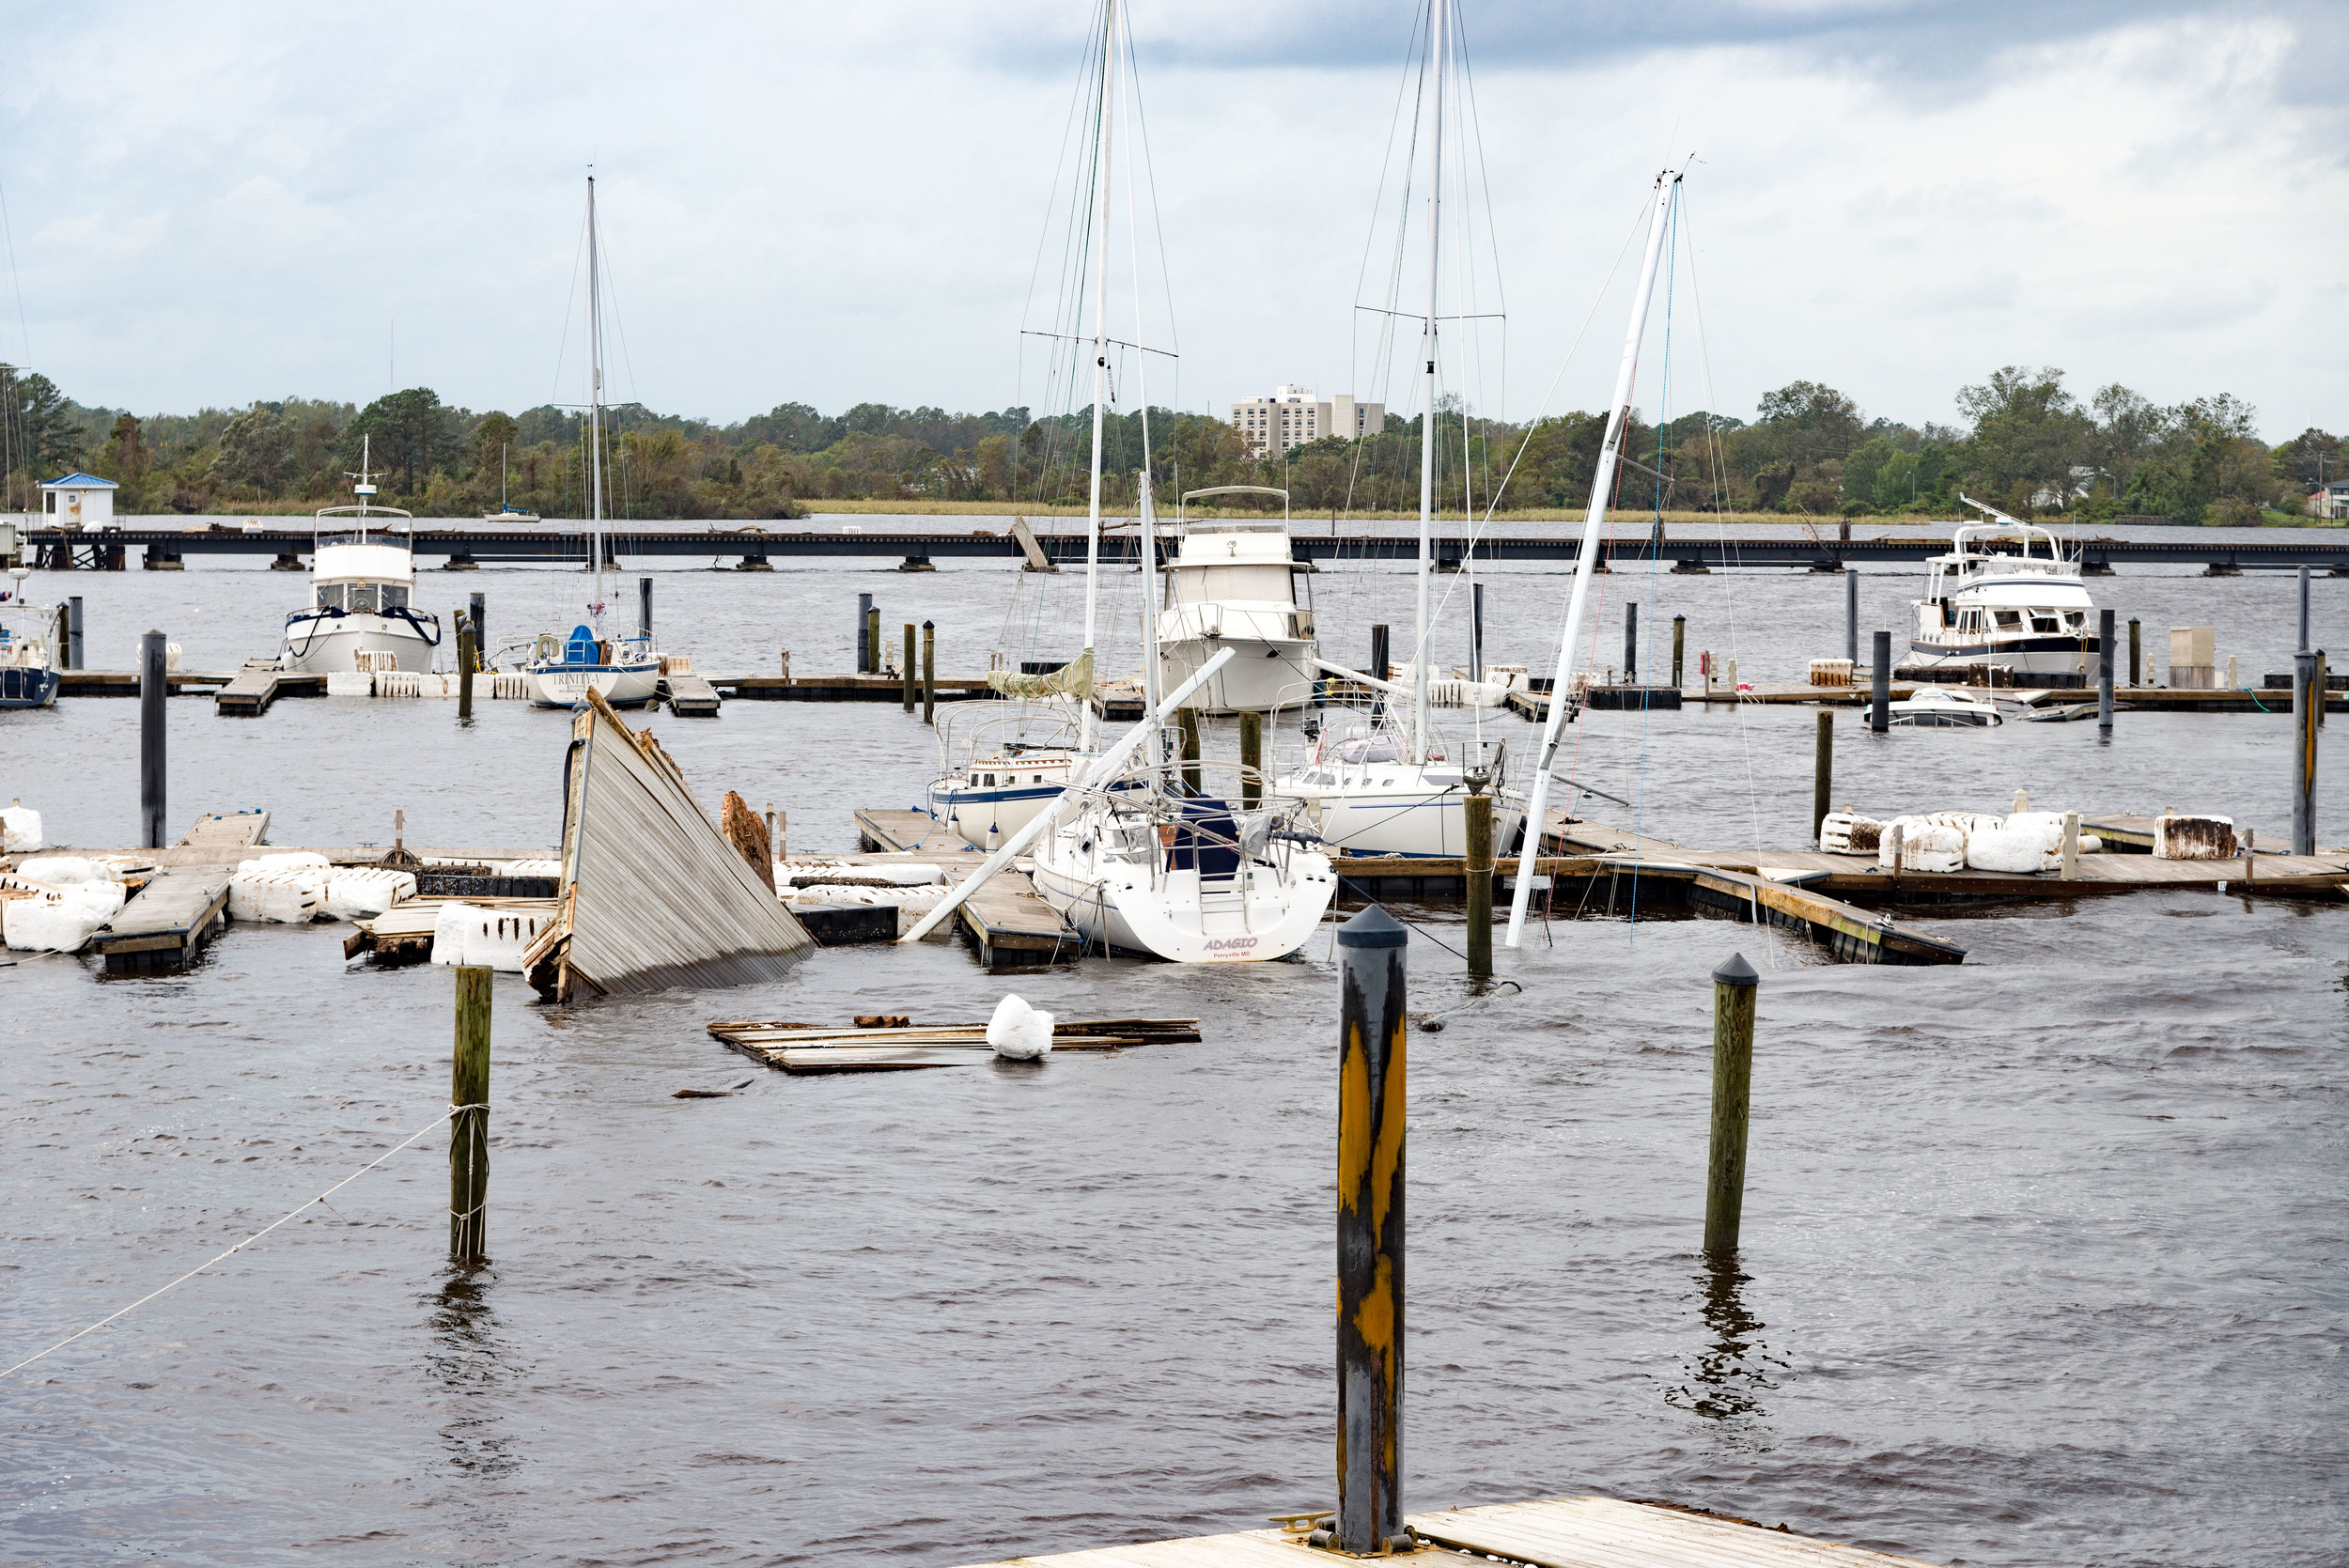 September 16, 2018, New Bern, NC-  Boats sunk at Bridgepointe Marina in the wake of Hurricane Florence.